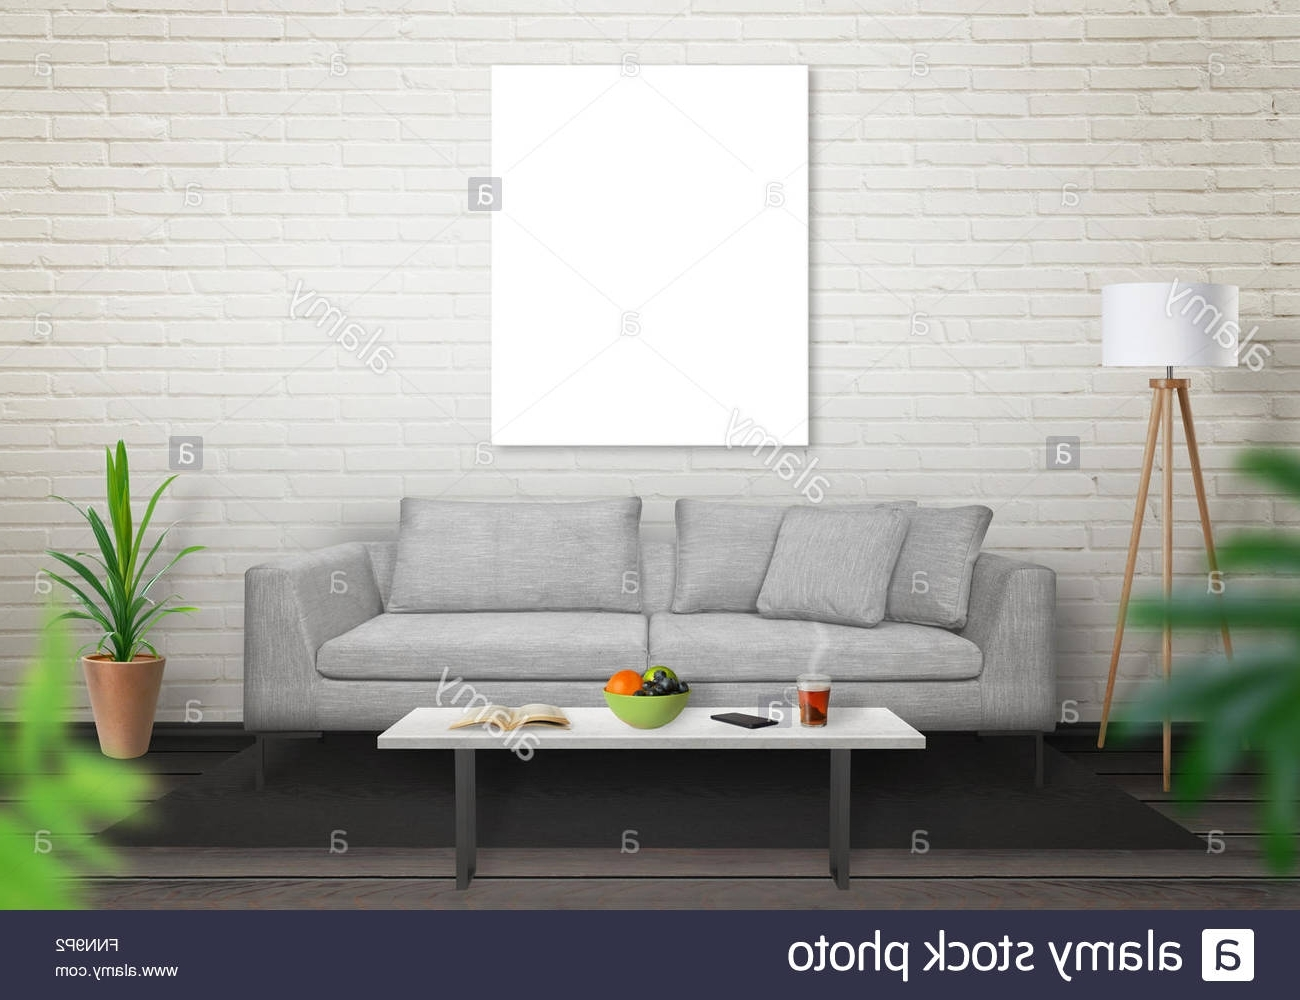 2018 Mockup Canvas Wall Art Within Isolated Art Canvas In Living Room For Mockup (View 3 of 15)